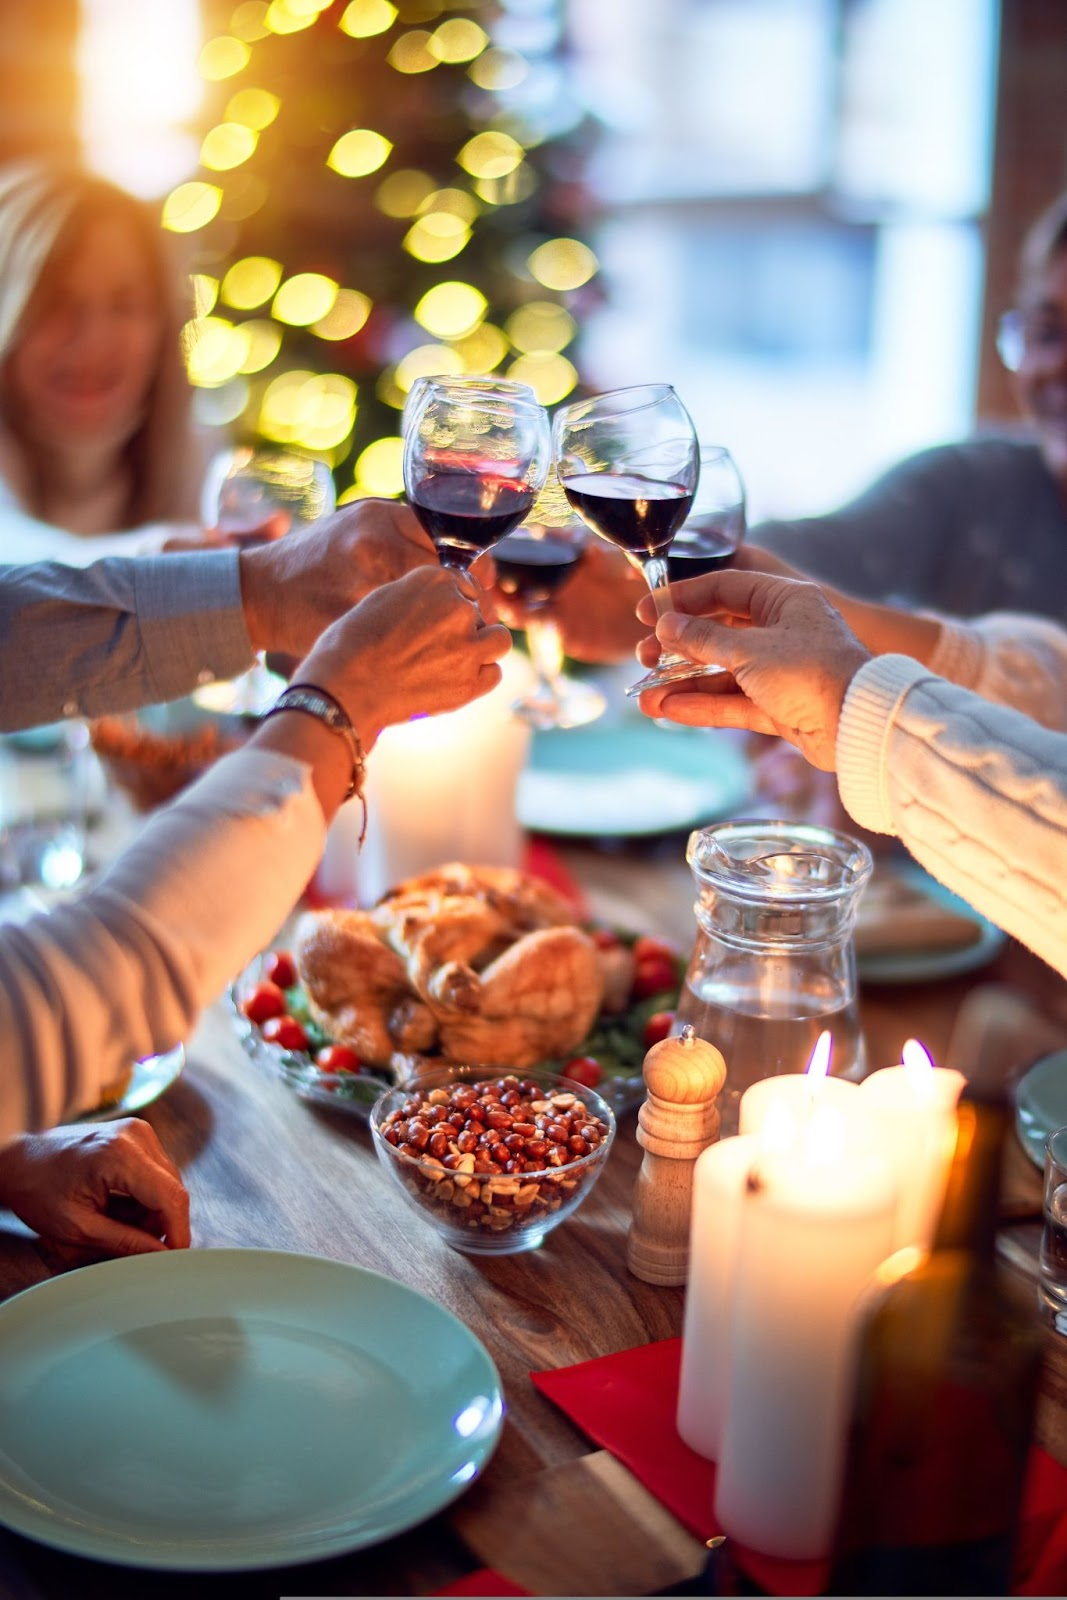 a group of people at a dinner table cheering their wine glasses together